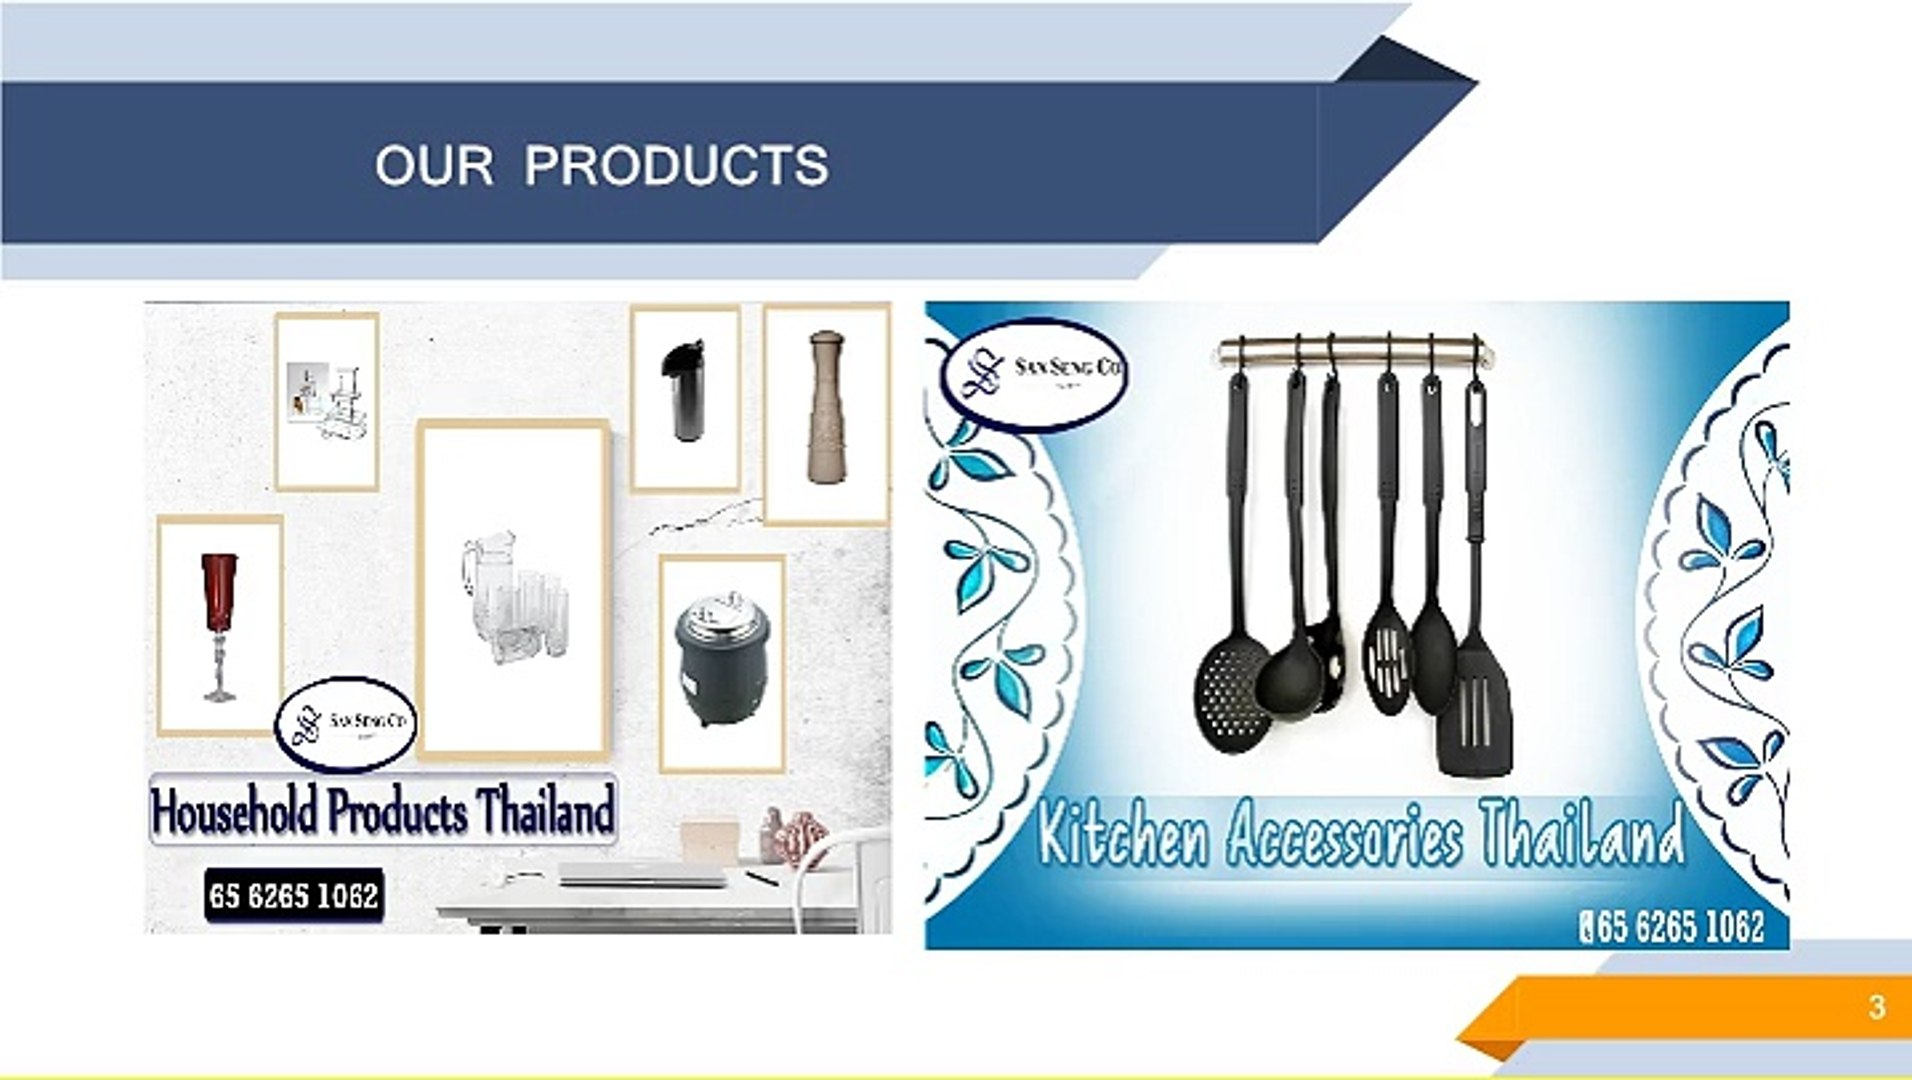 Household Products Thailand